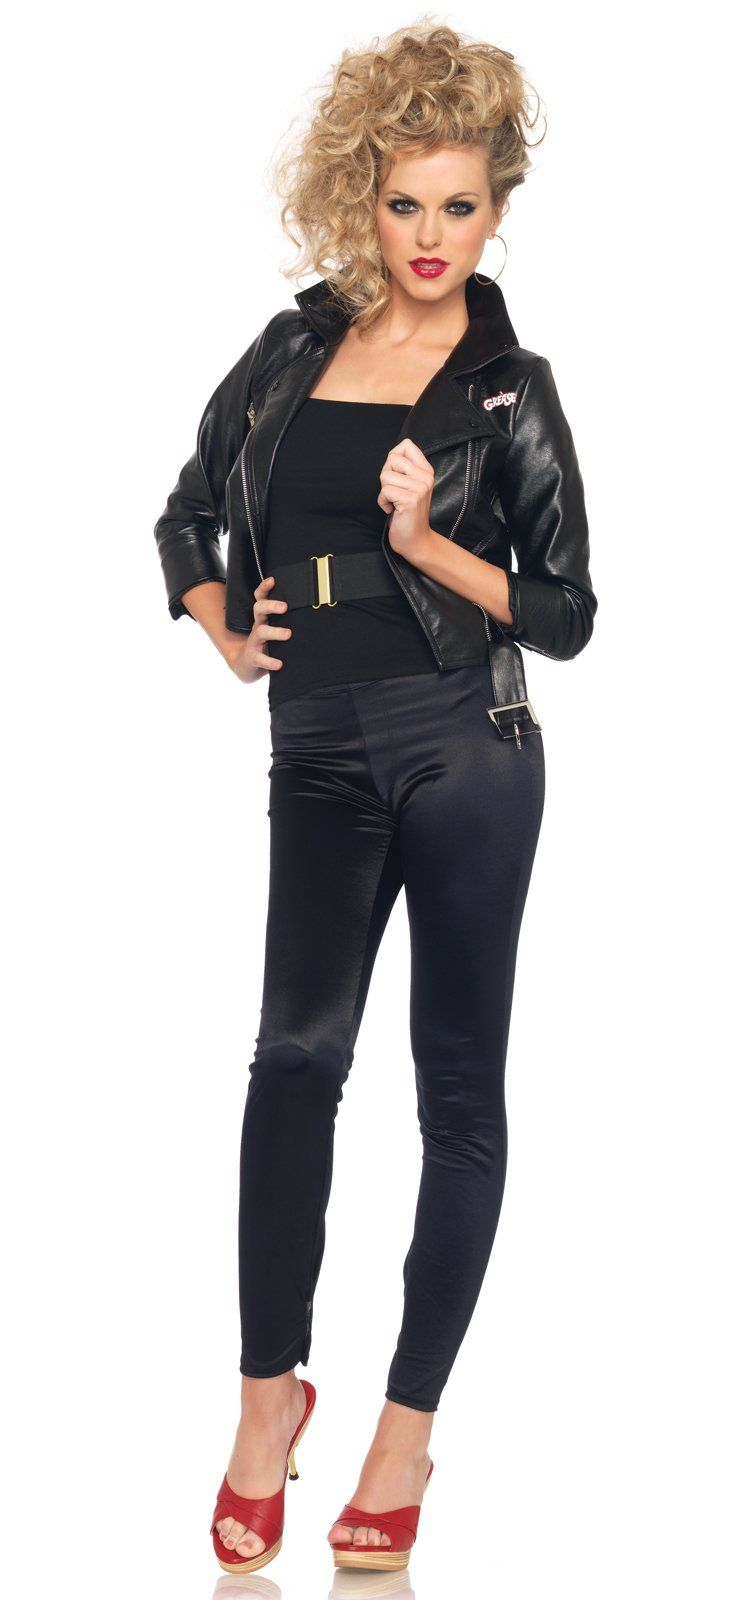 Grease Bad Sandy Jacket Adult Costume Costumes Grease Outfits